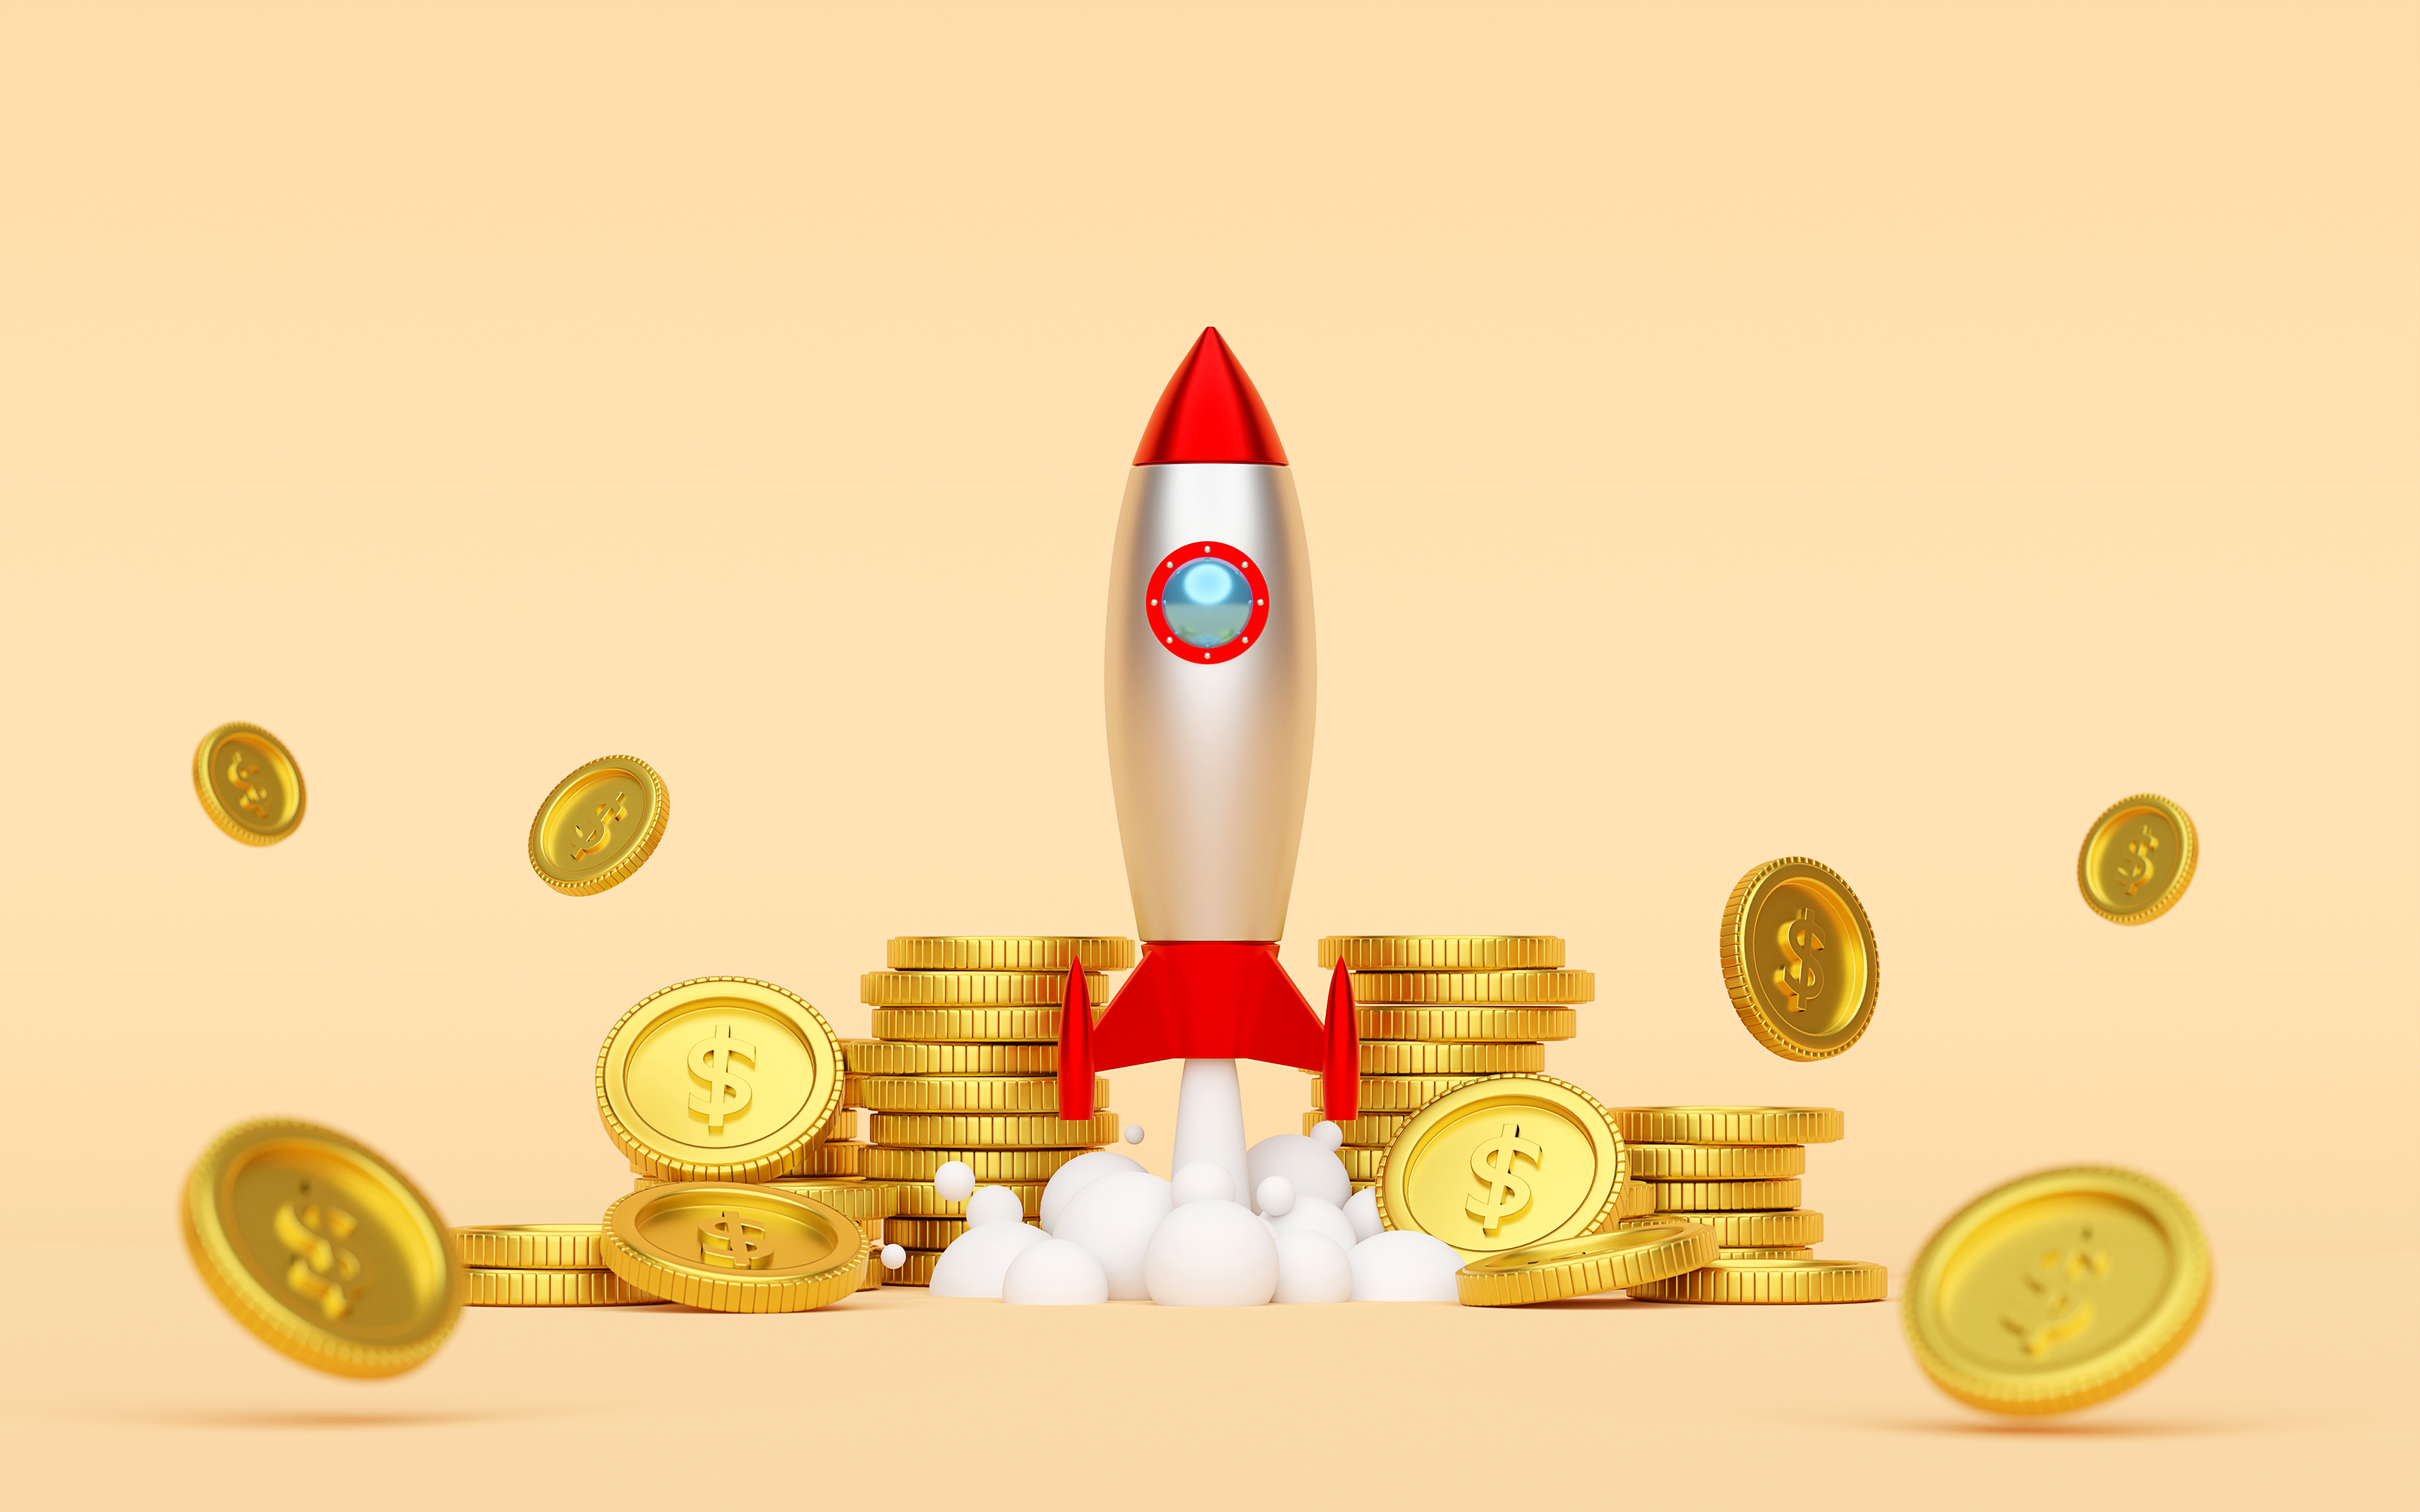 Rocket launching from ground with coins